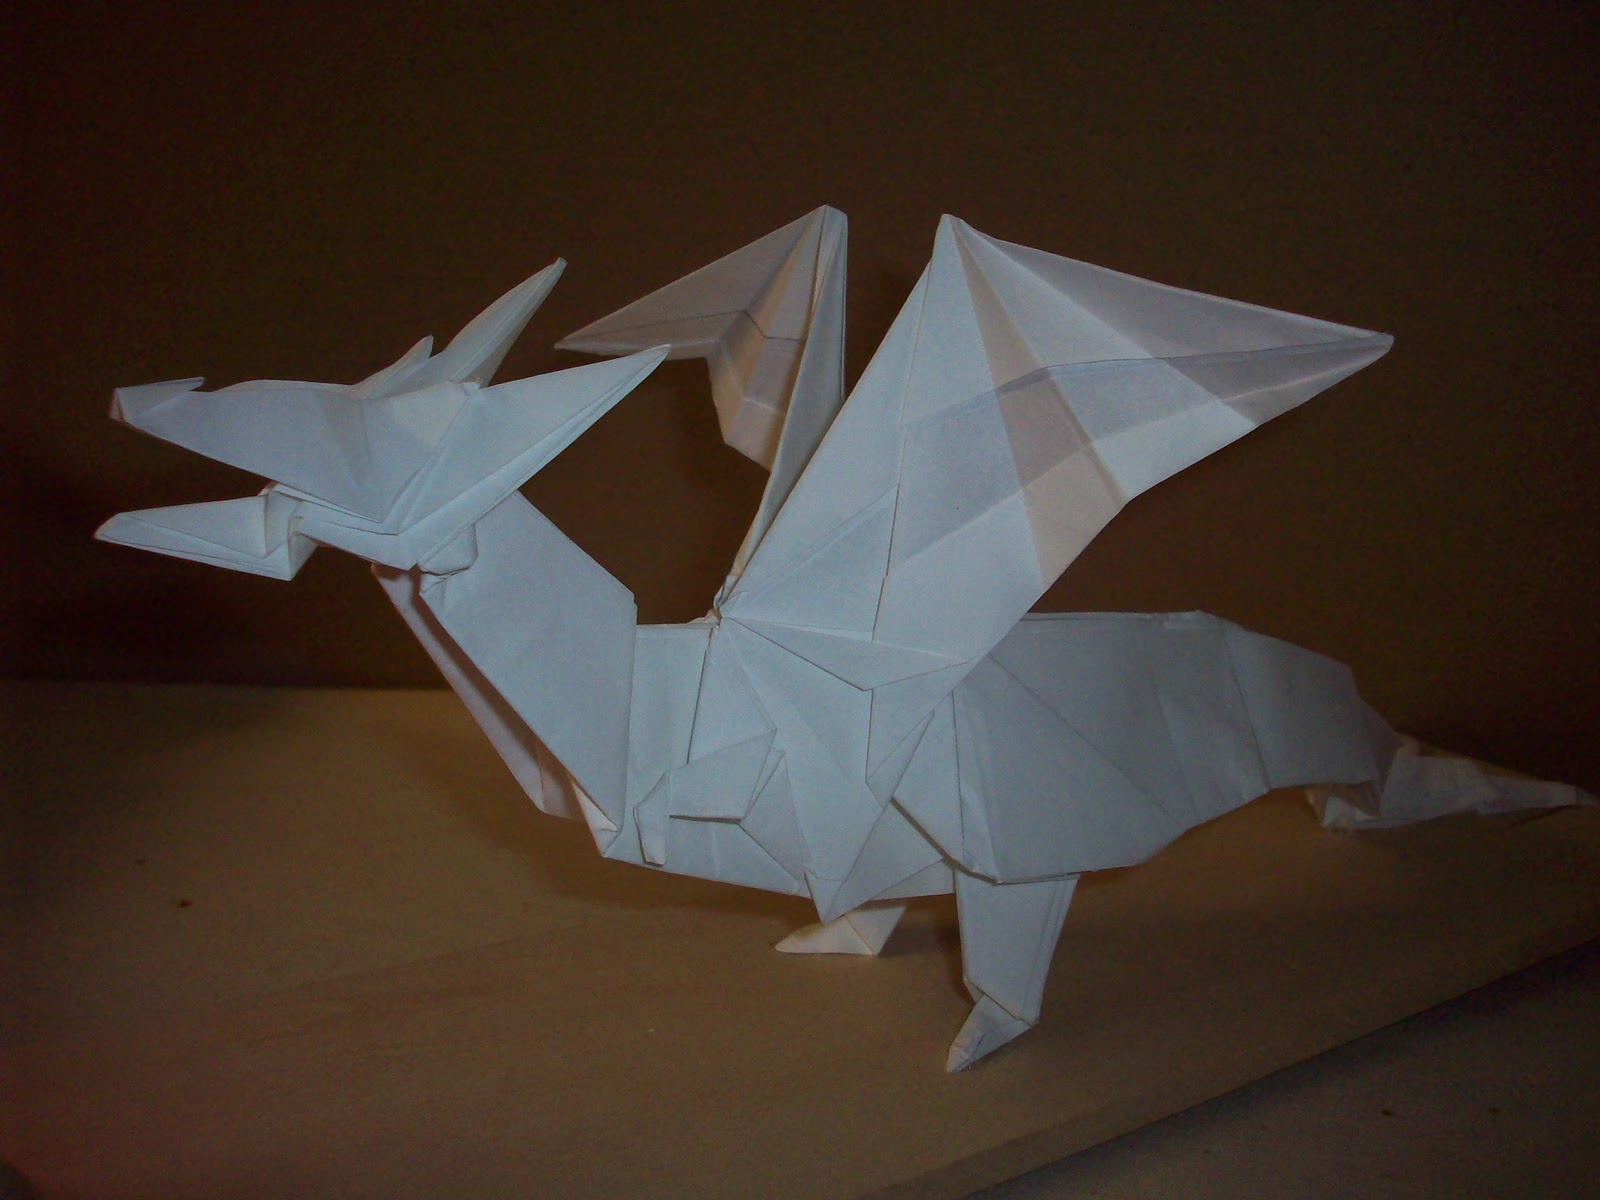 Doodle-ee-doo: Origami Dragon - photo#47